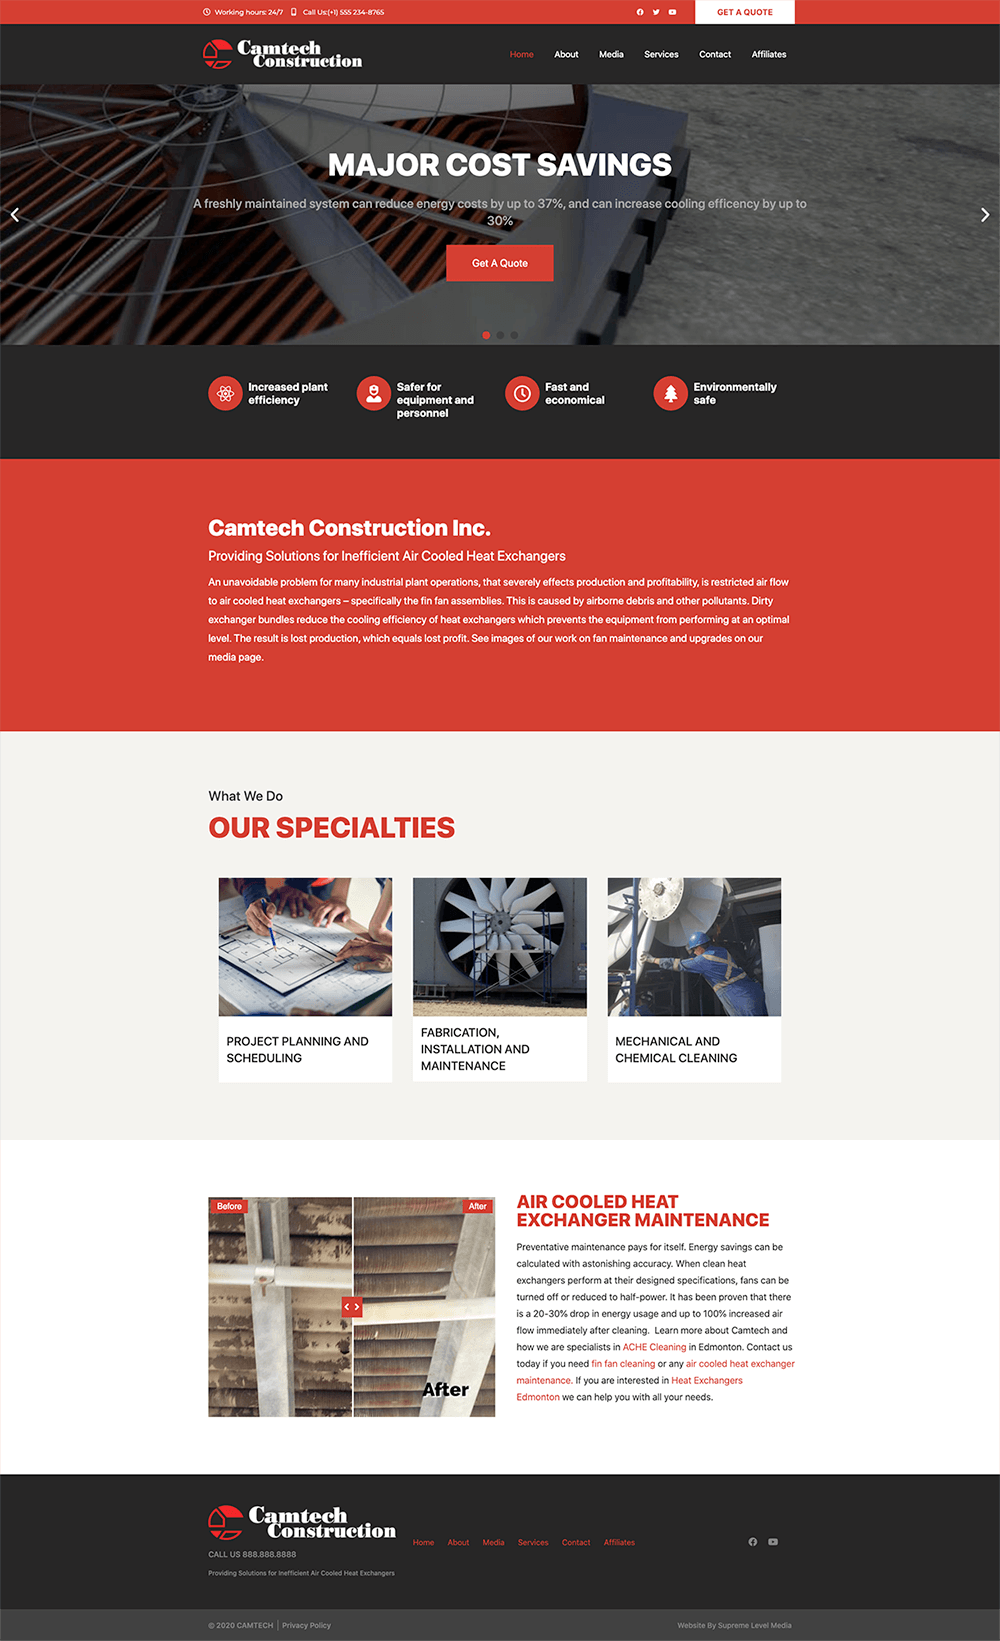 Camtech Construction – Providing Fin Fan and Air Cooled Heat Exchanger upgrades, maintenance, cleaning, performance testing anywhere in North America copy